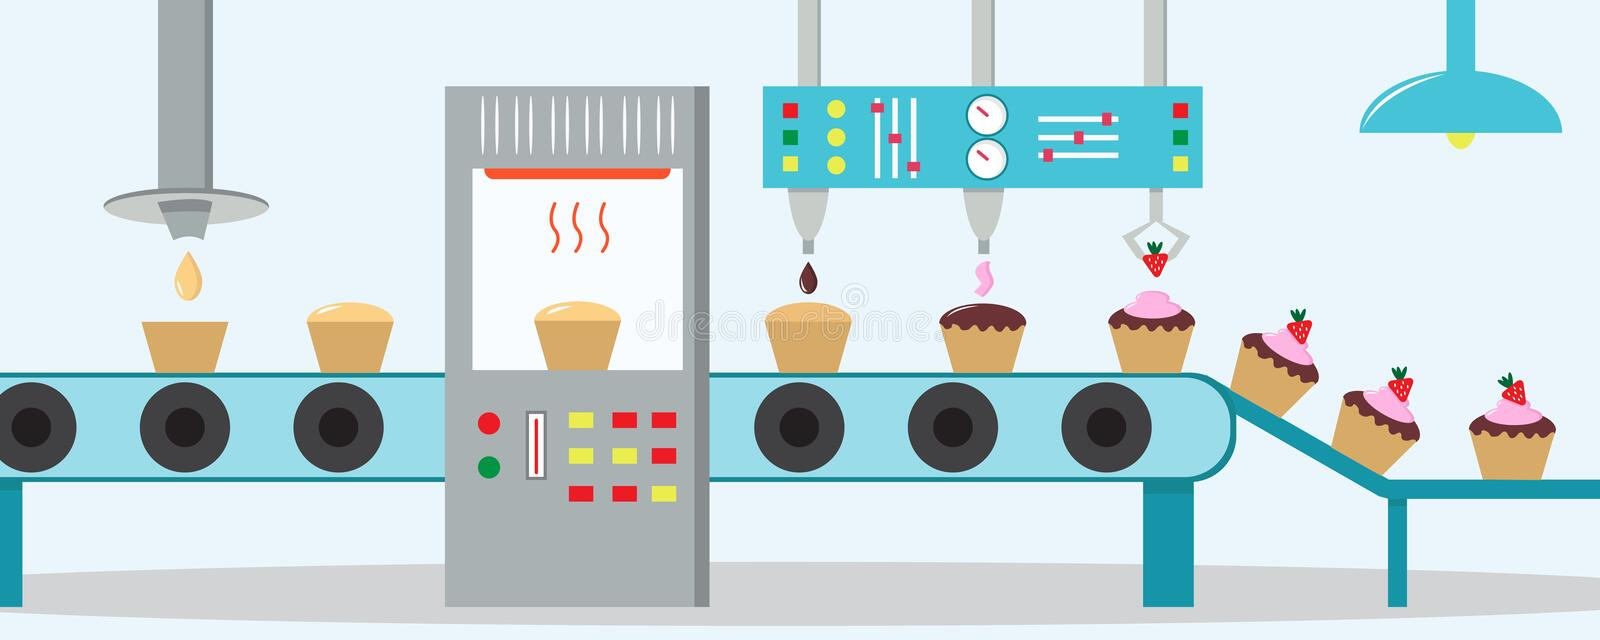 Cupcakes factory. Machine for the production of cupcakes royalty free illustration